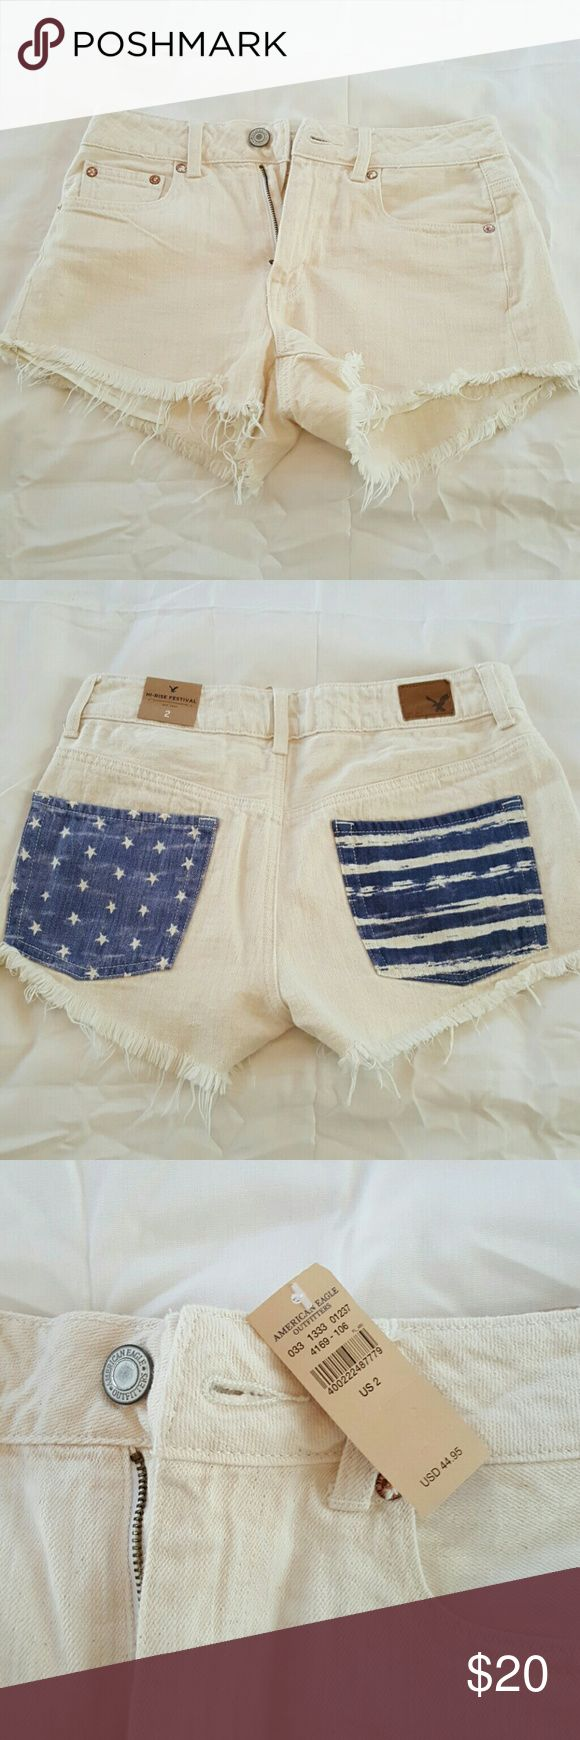 American Eagle shorts Off white jean shorts with stars ans stripe details on back pockets. Cut off look. Brand New with tags size 2 American Eagle Outfitters Shorts Jean Shorts